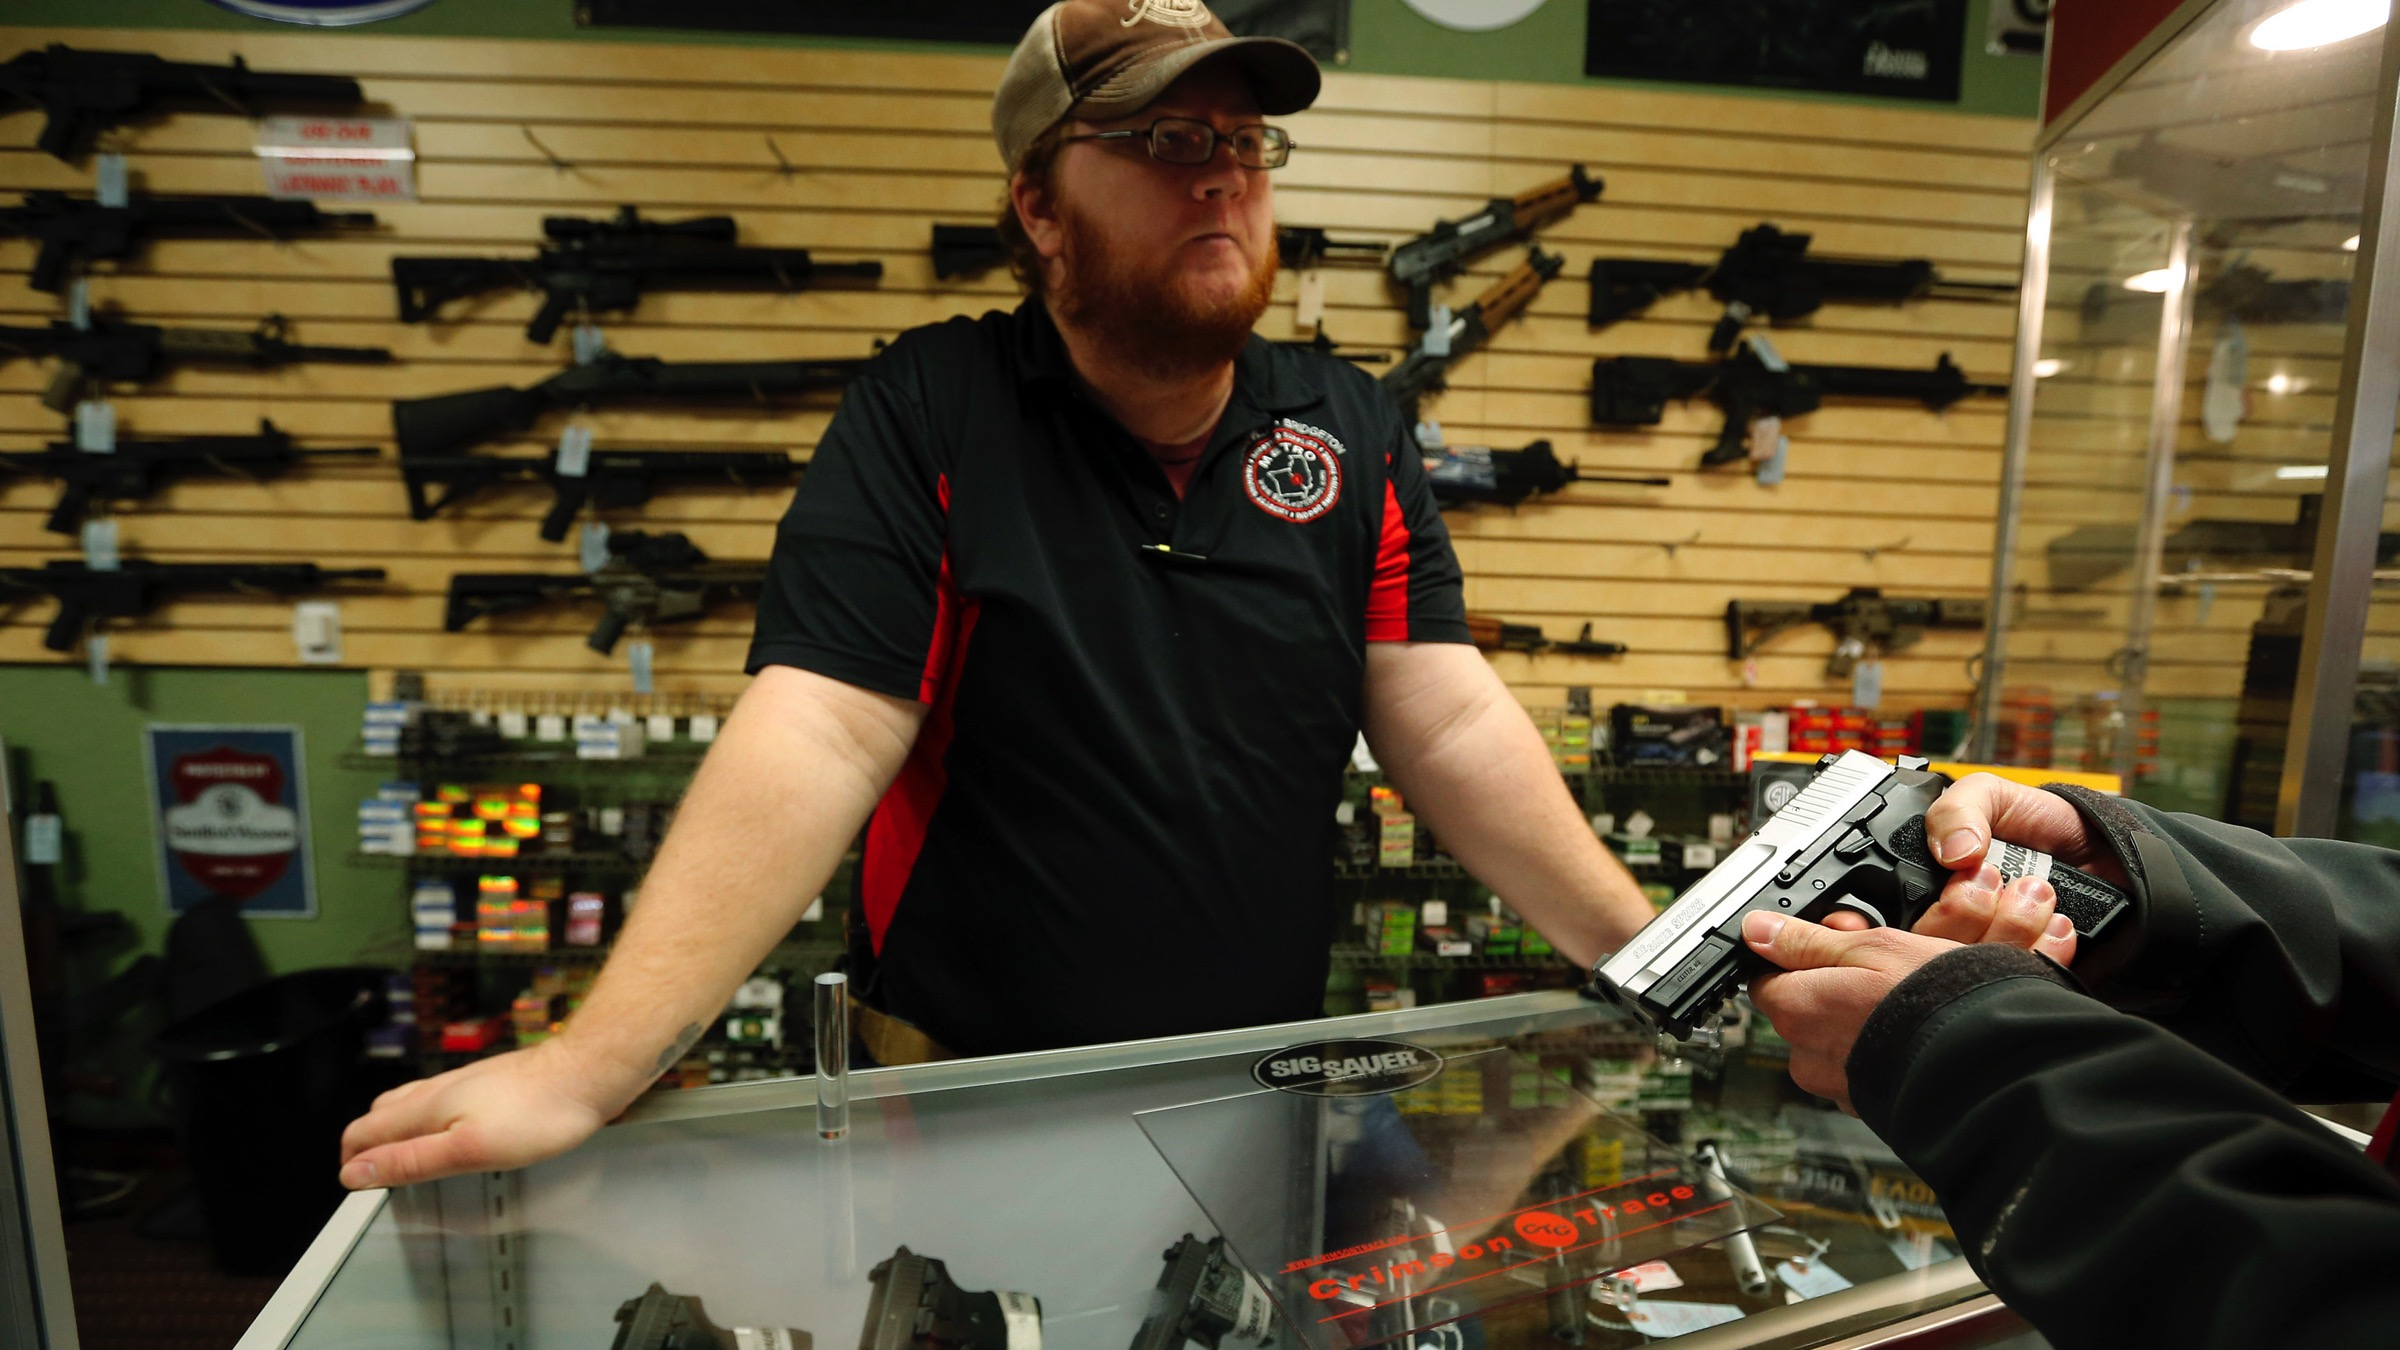 Metro Shooting Supplies' employee Chris Cox speaks to a customer about the purchase of a 9mm handgun in Bridgeton